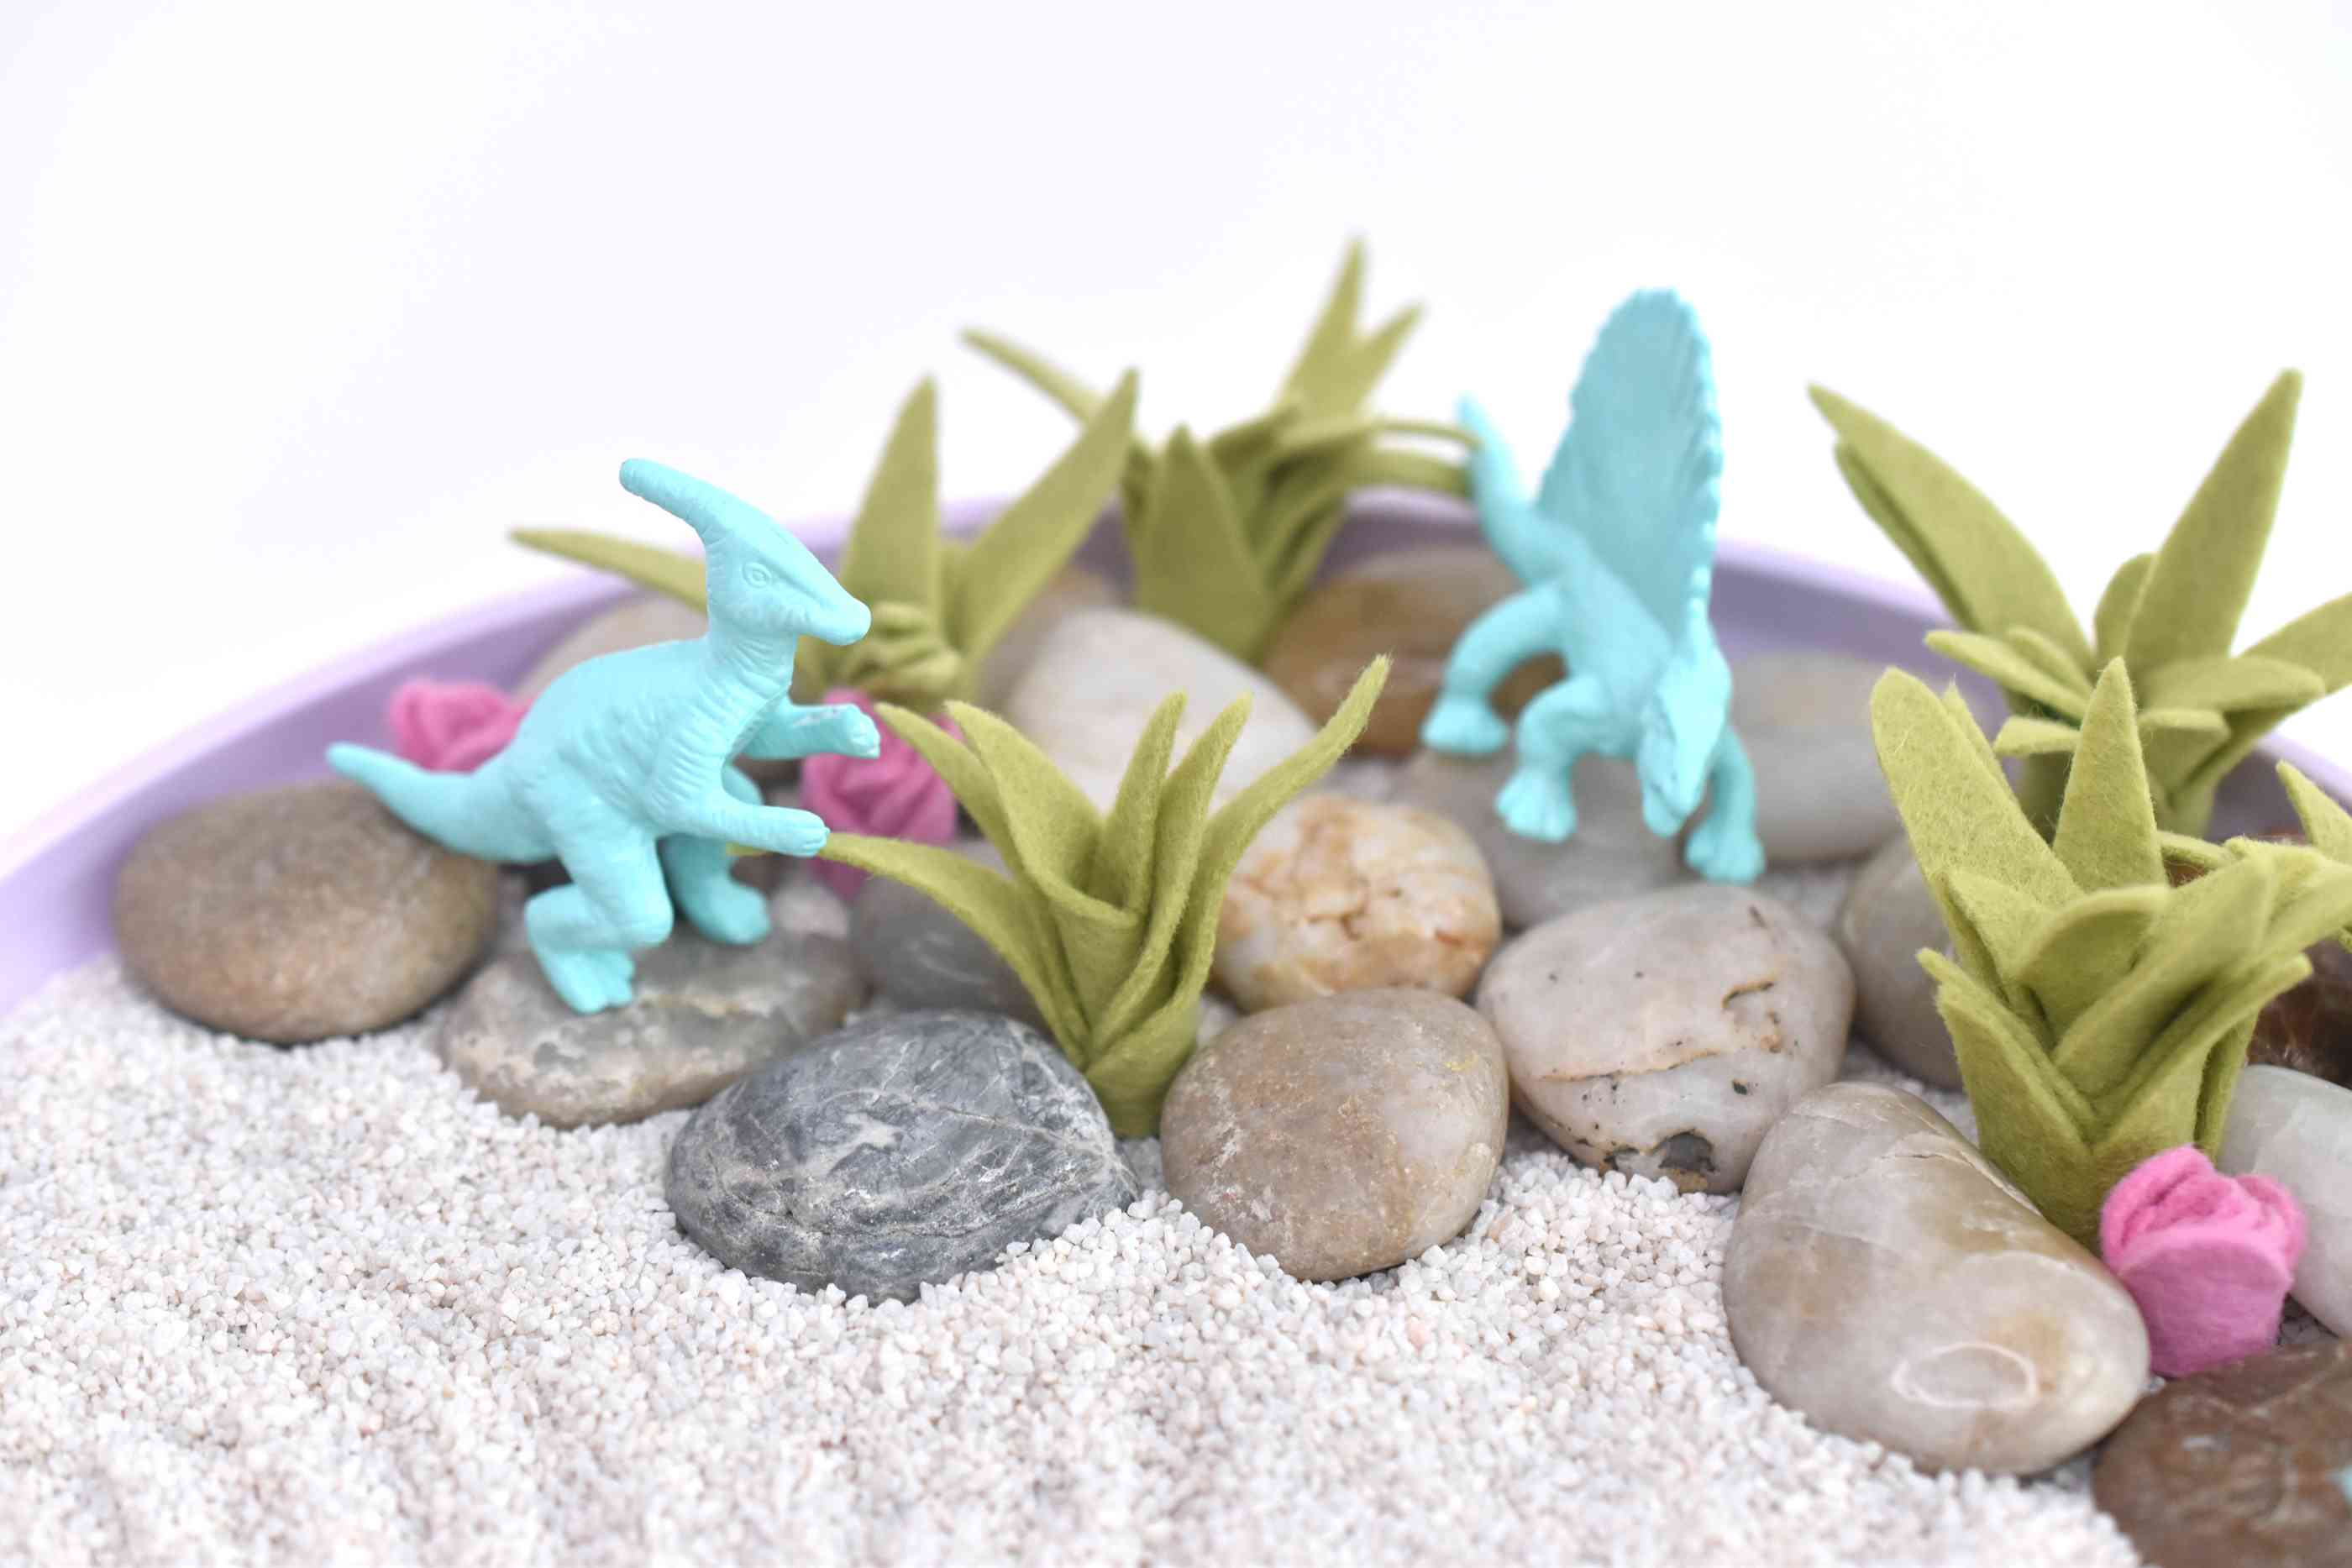 Add the Painted Dinosaurs to the Garden